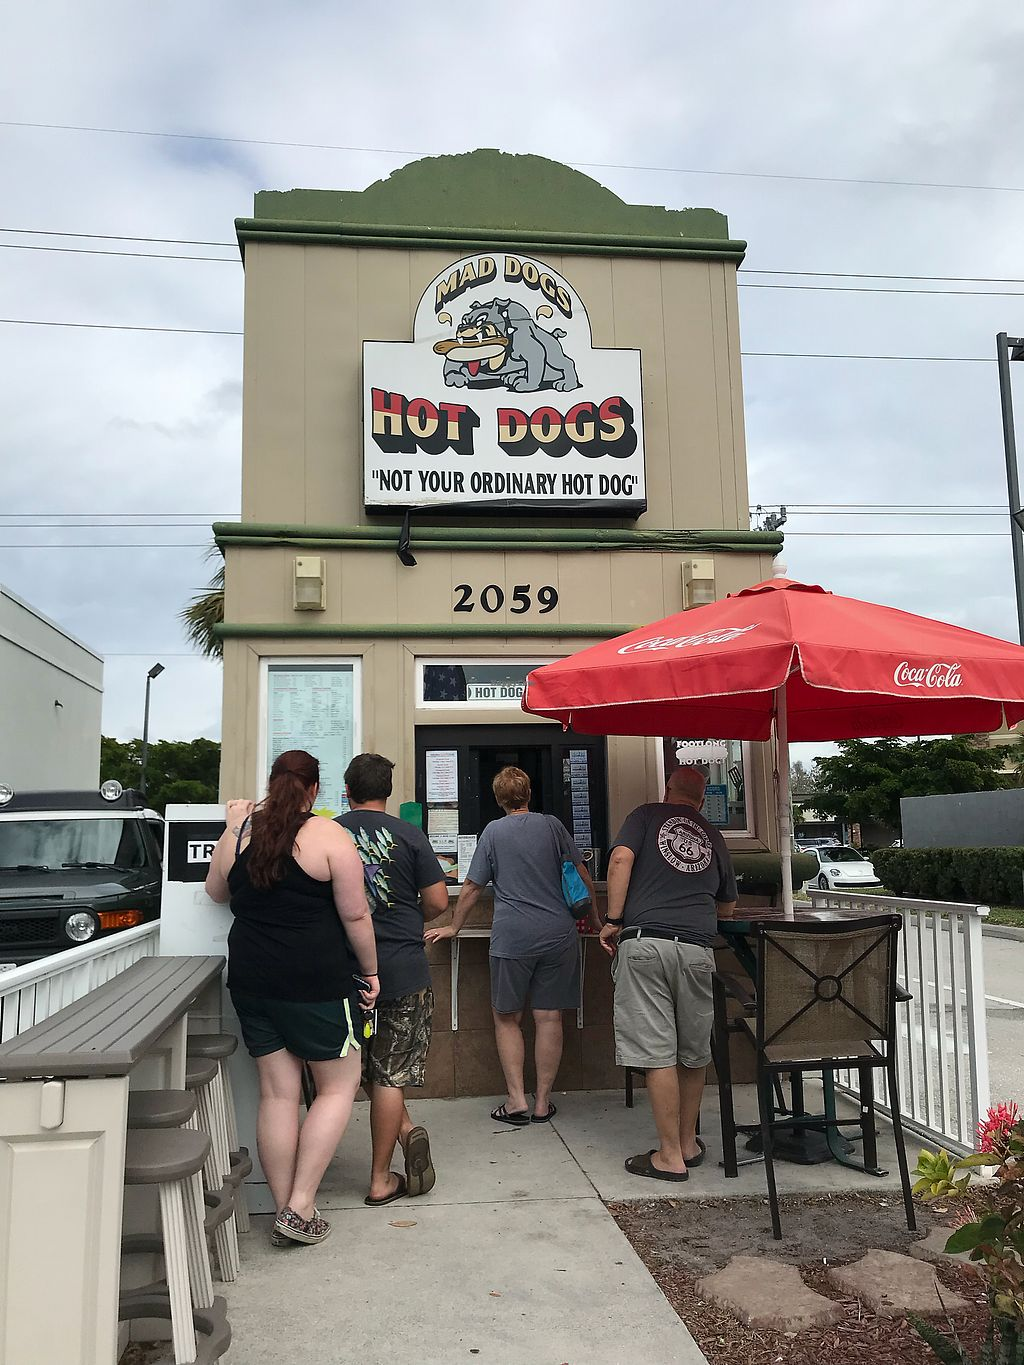 """Photo of Mad Dogs Hot Dogs  by <a href=""""/members/profile/Banana%20Buzzbomb"""">Banana Buzzbomb</a> <br/>Outside <br/> November 21, 2017  - <a href='/contact/abuse/image/98759/327884'>Report</a>"""